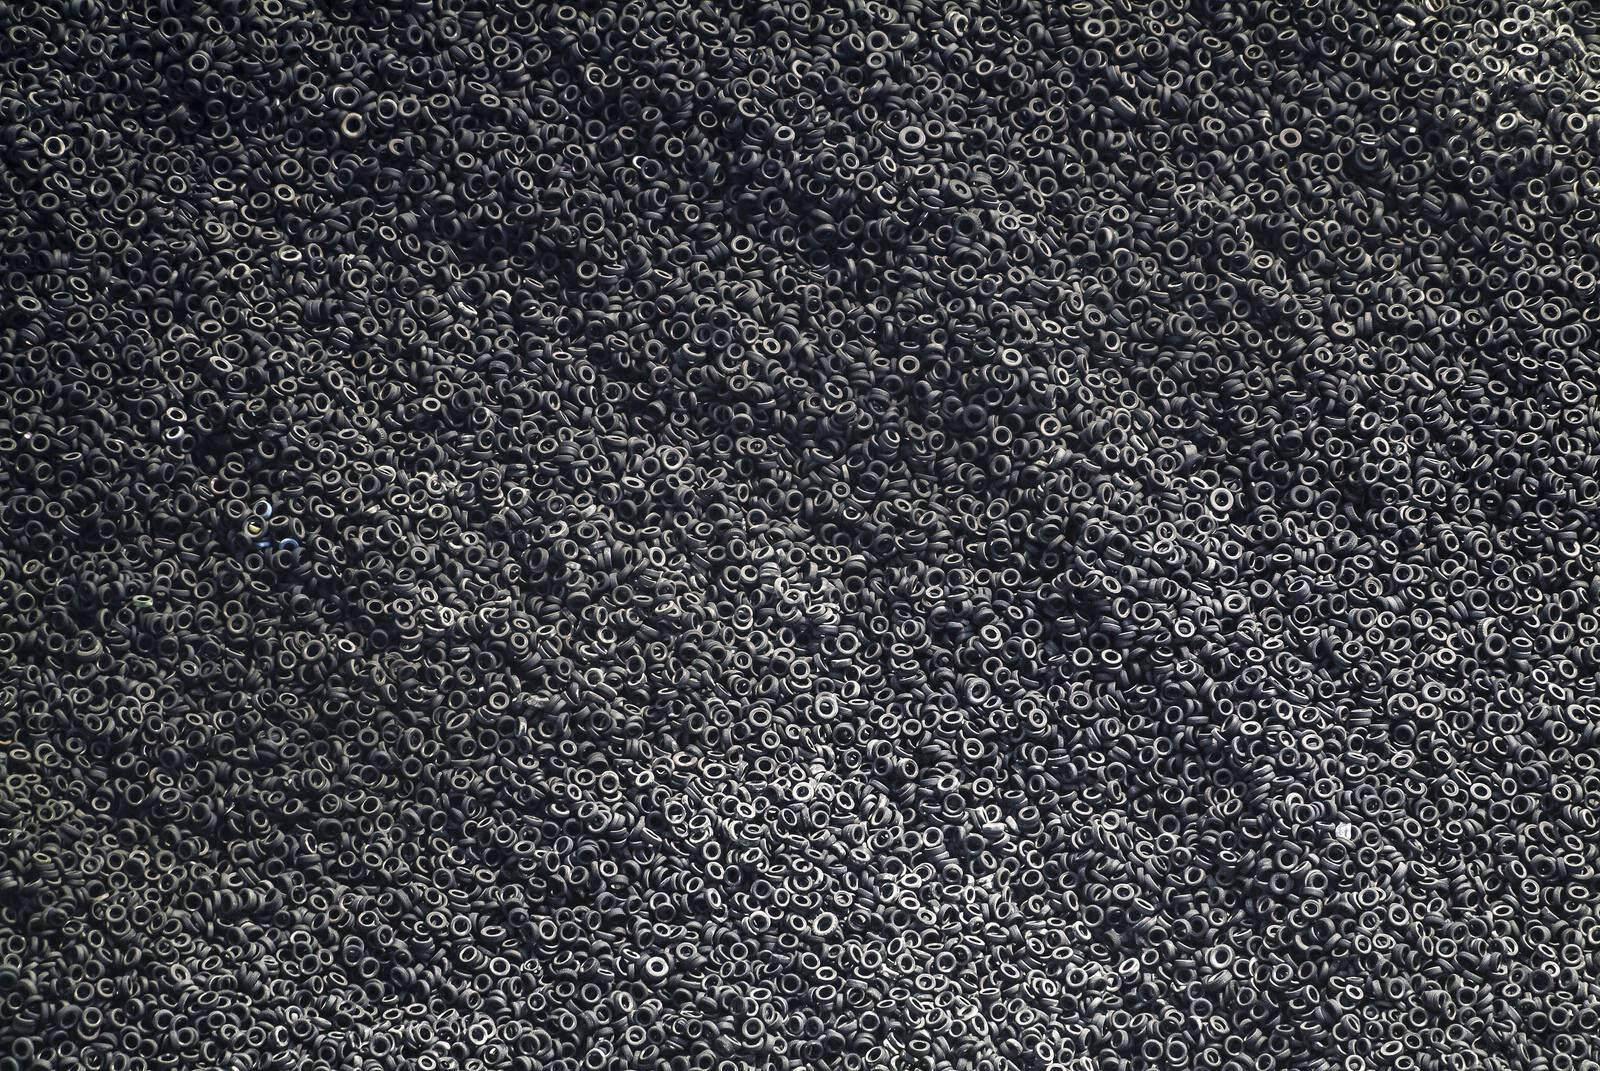 Aerial view of a scrap tire dumpyard. http://t.co/mI8C4v3xkY